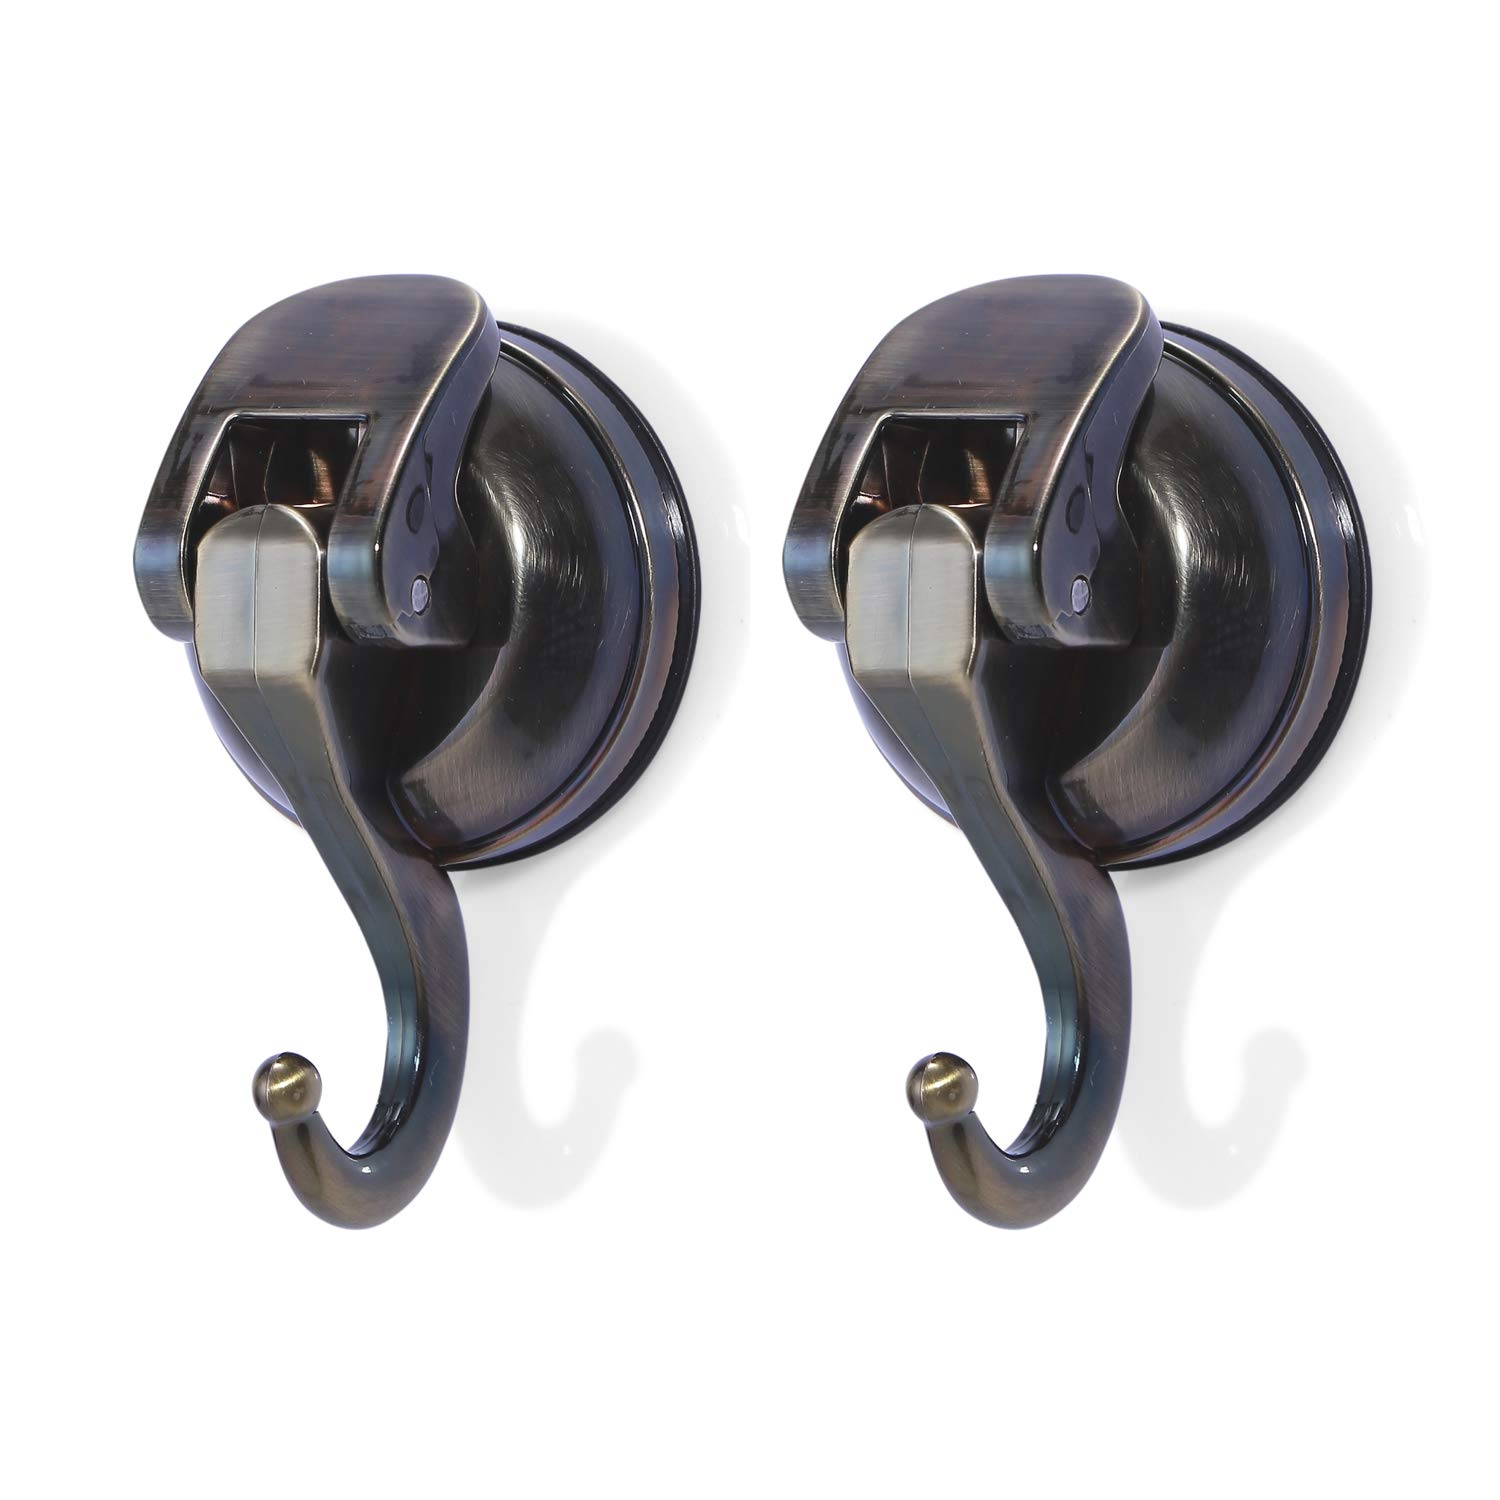 Togu TG-PB57-L02-AB ABS Vacuum Thick Rubber Suction Cup Hooks,Removable Heavy Duty Suction Hooks,as Cup Holder,Towel/Coat/hat/Handbag Hook/Holder,Bathroom Organizer/Storage, Antique Bronze,2pack by Togu